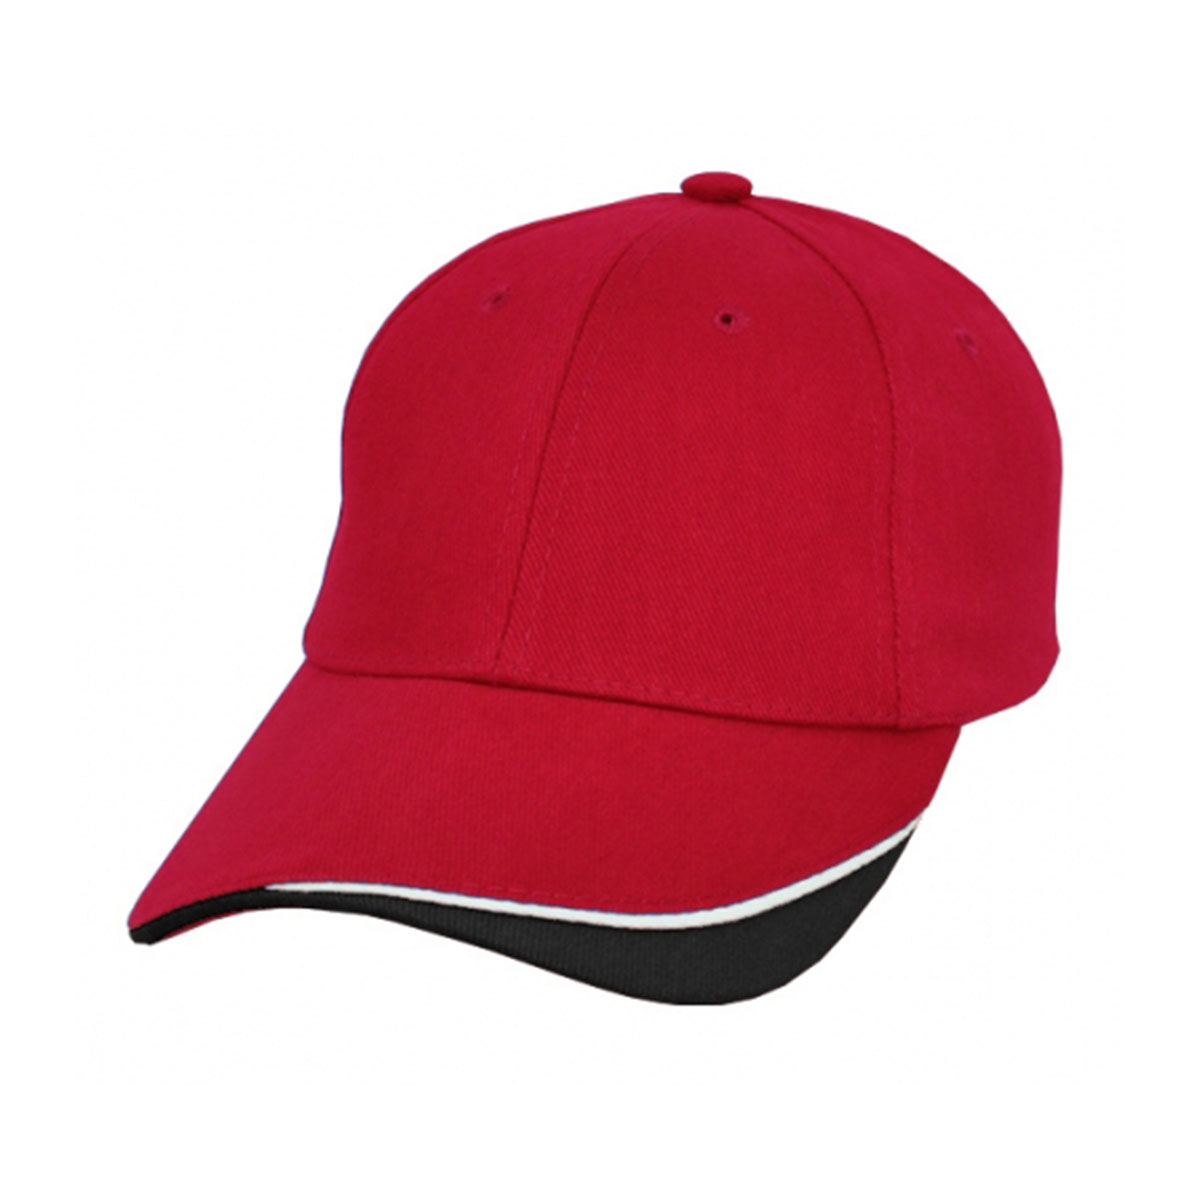 Razor Cap-Red / White / Black